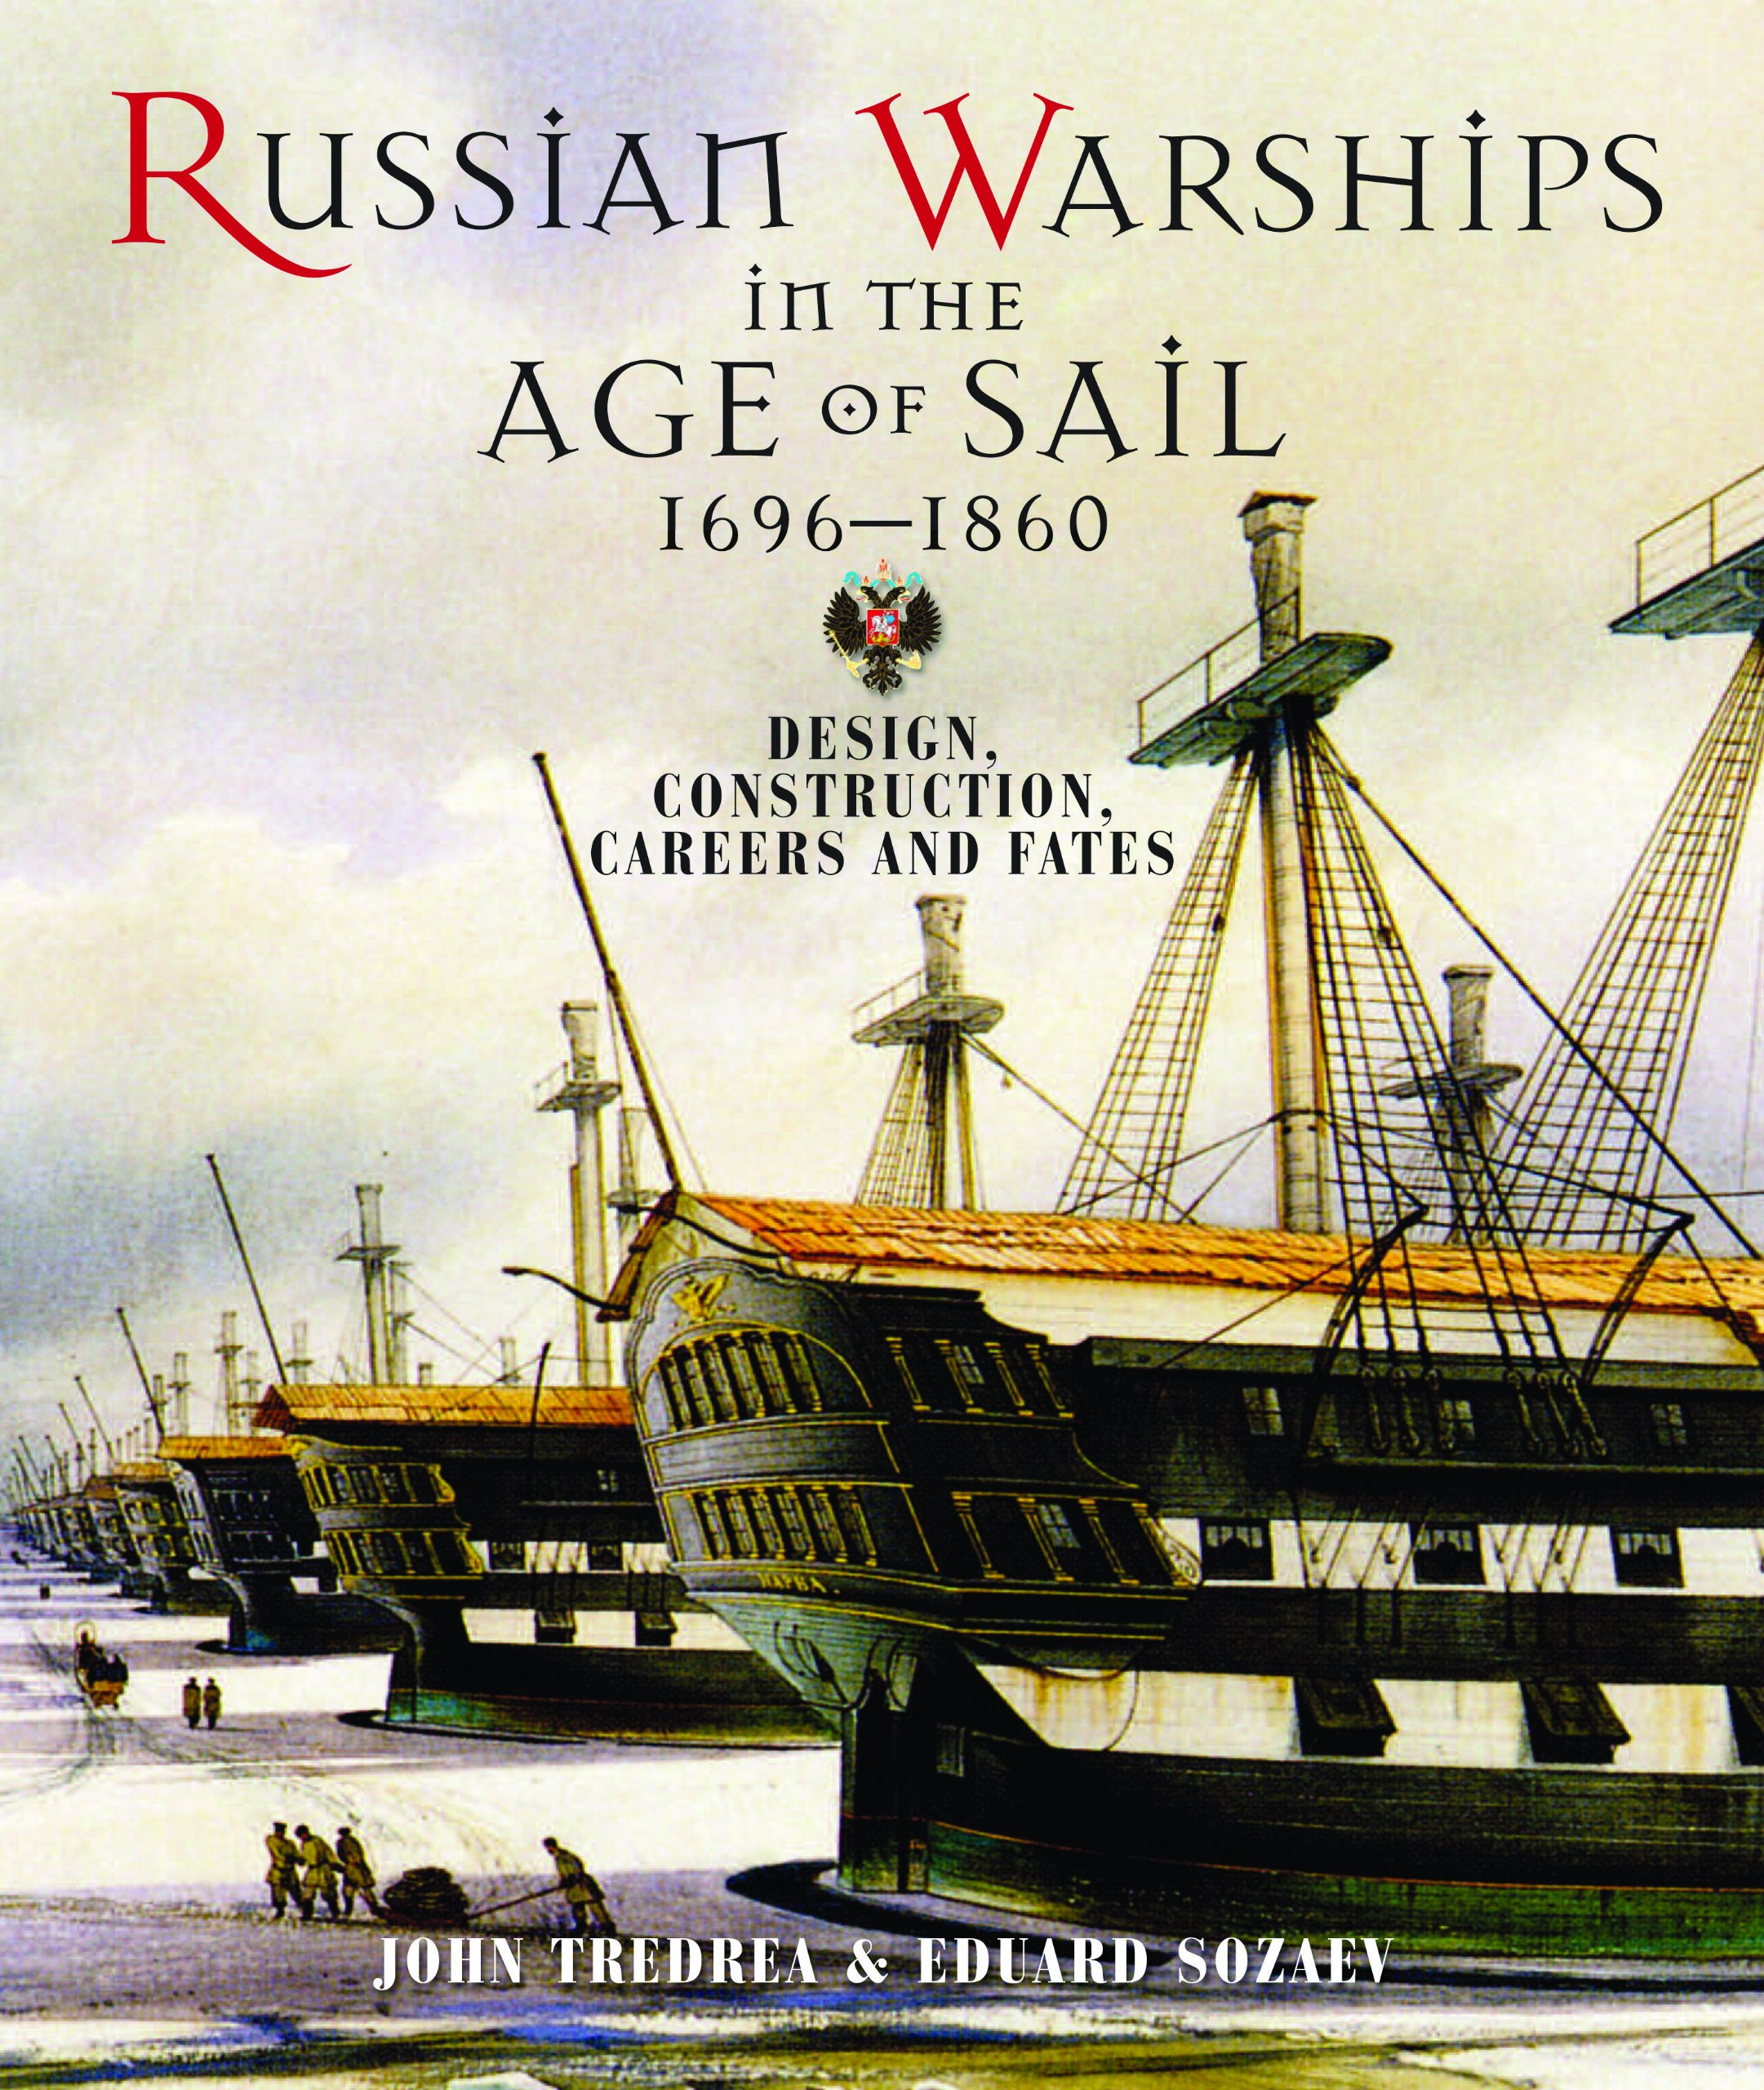 Russian Warships in the Age of Sail, 1696-1860: Design, Construction, Careers and Fates